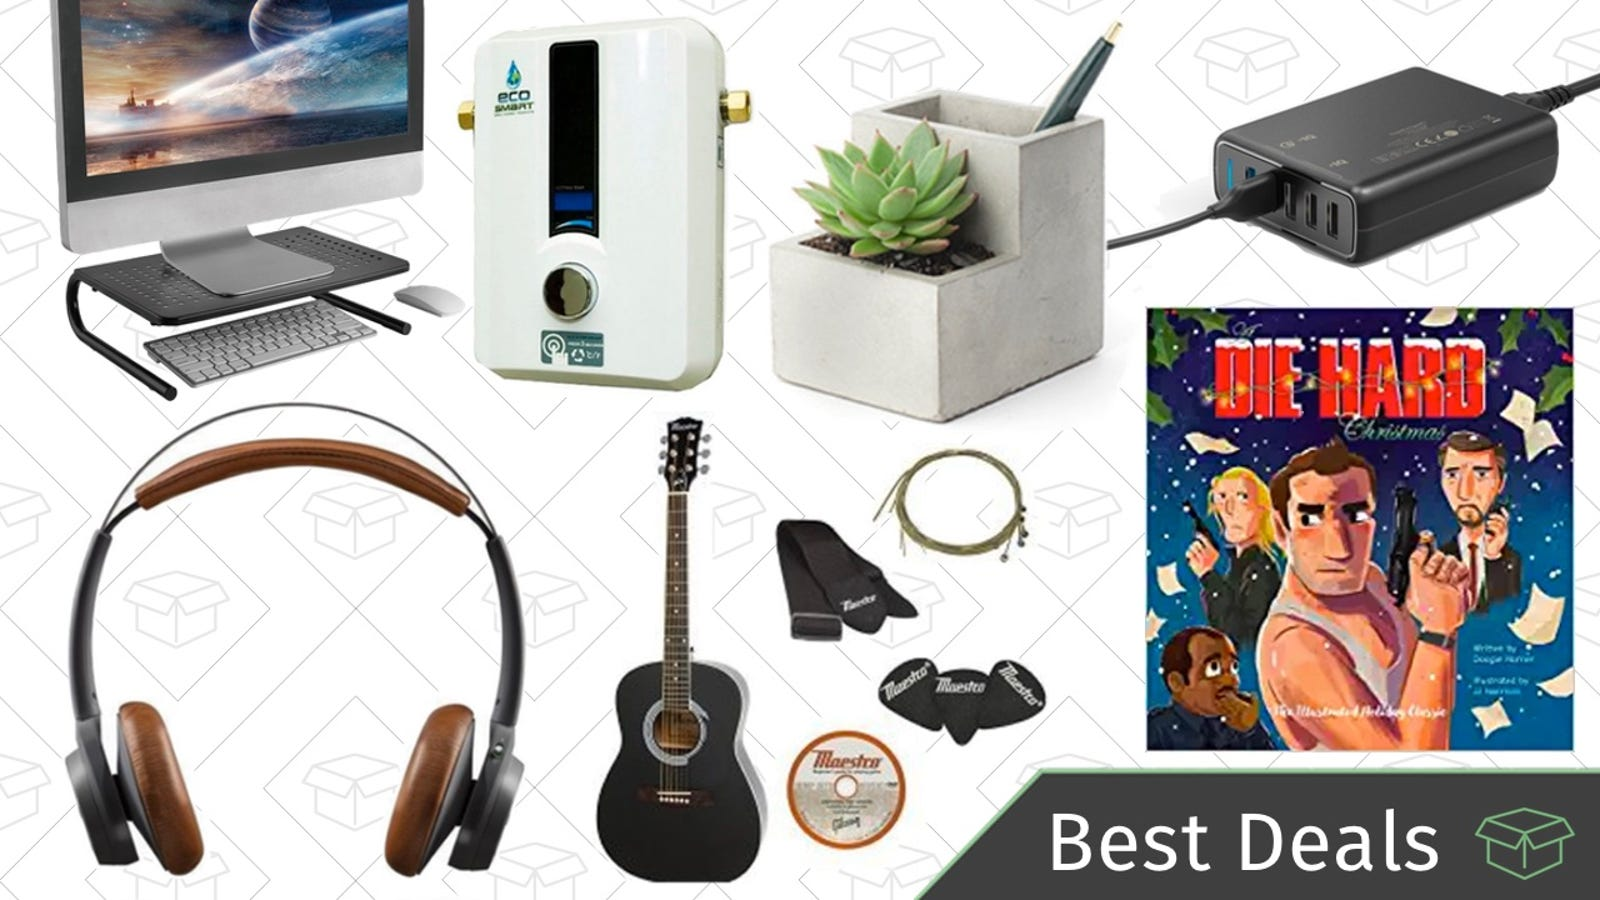 The best deals on the web for may 16 2018 fandeluxe Gallery